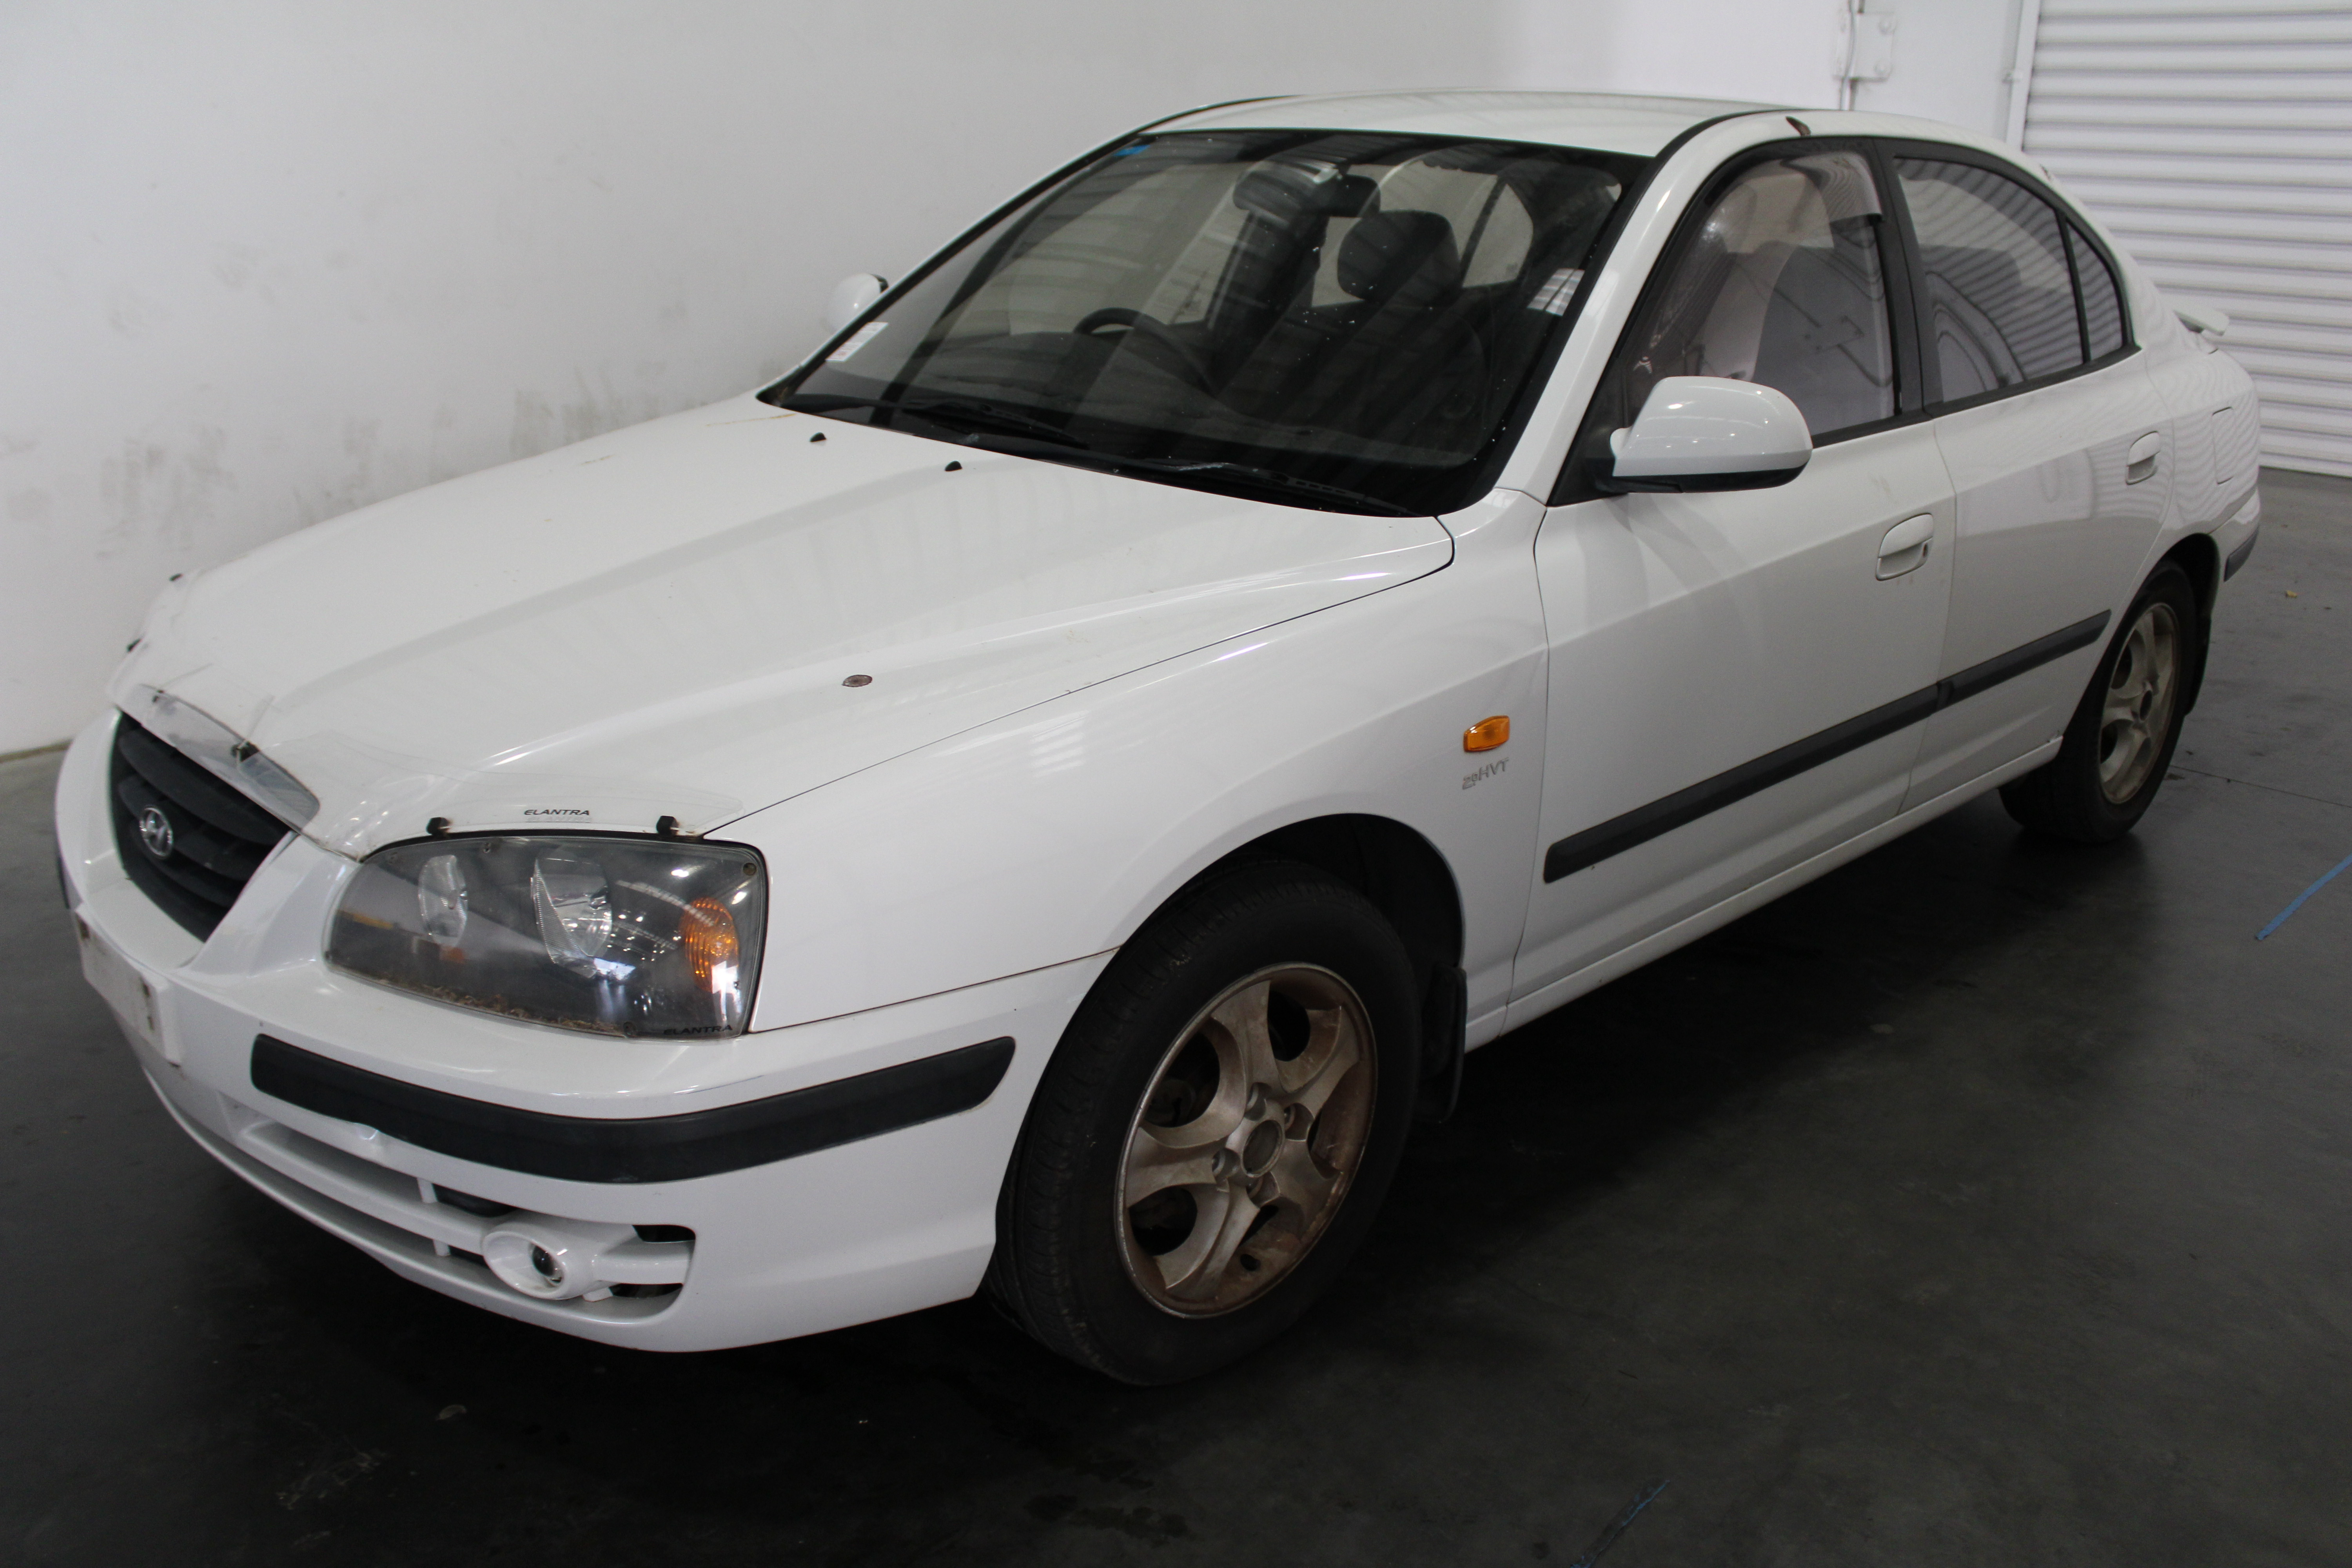 2003 Hyundai Elantra Elite 2.0 HVT XD Automatic Sedan